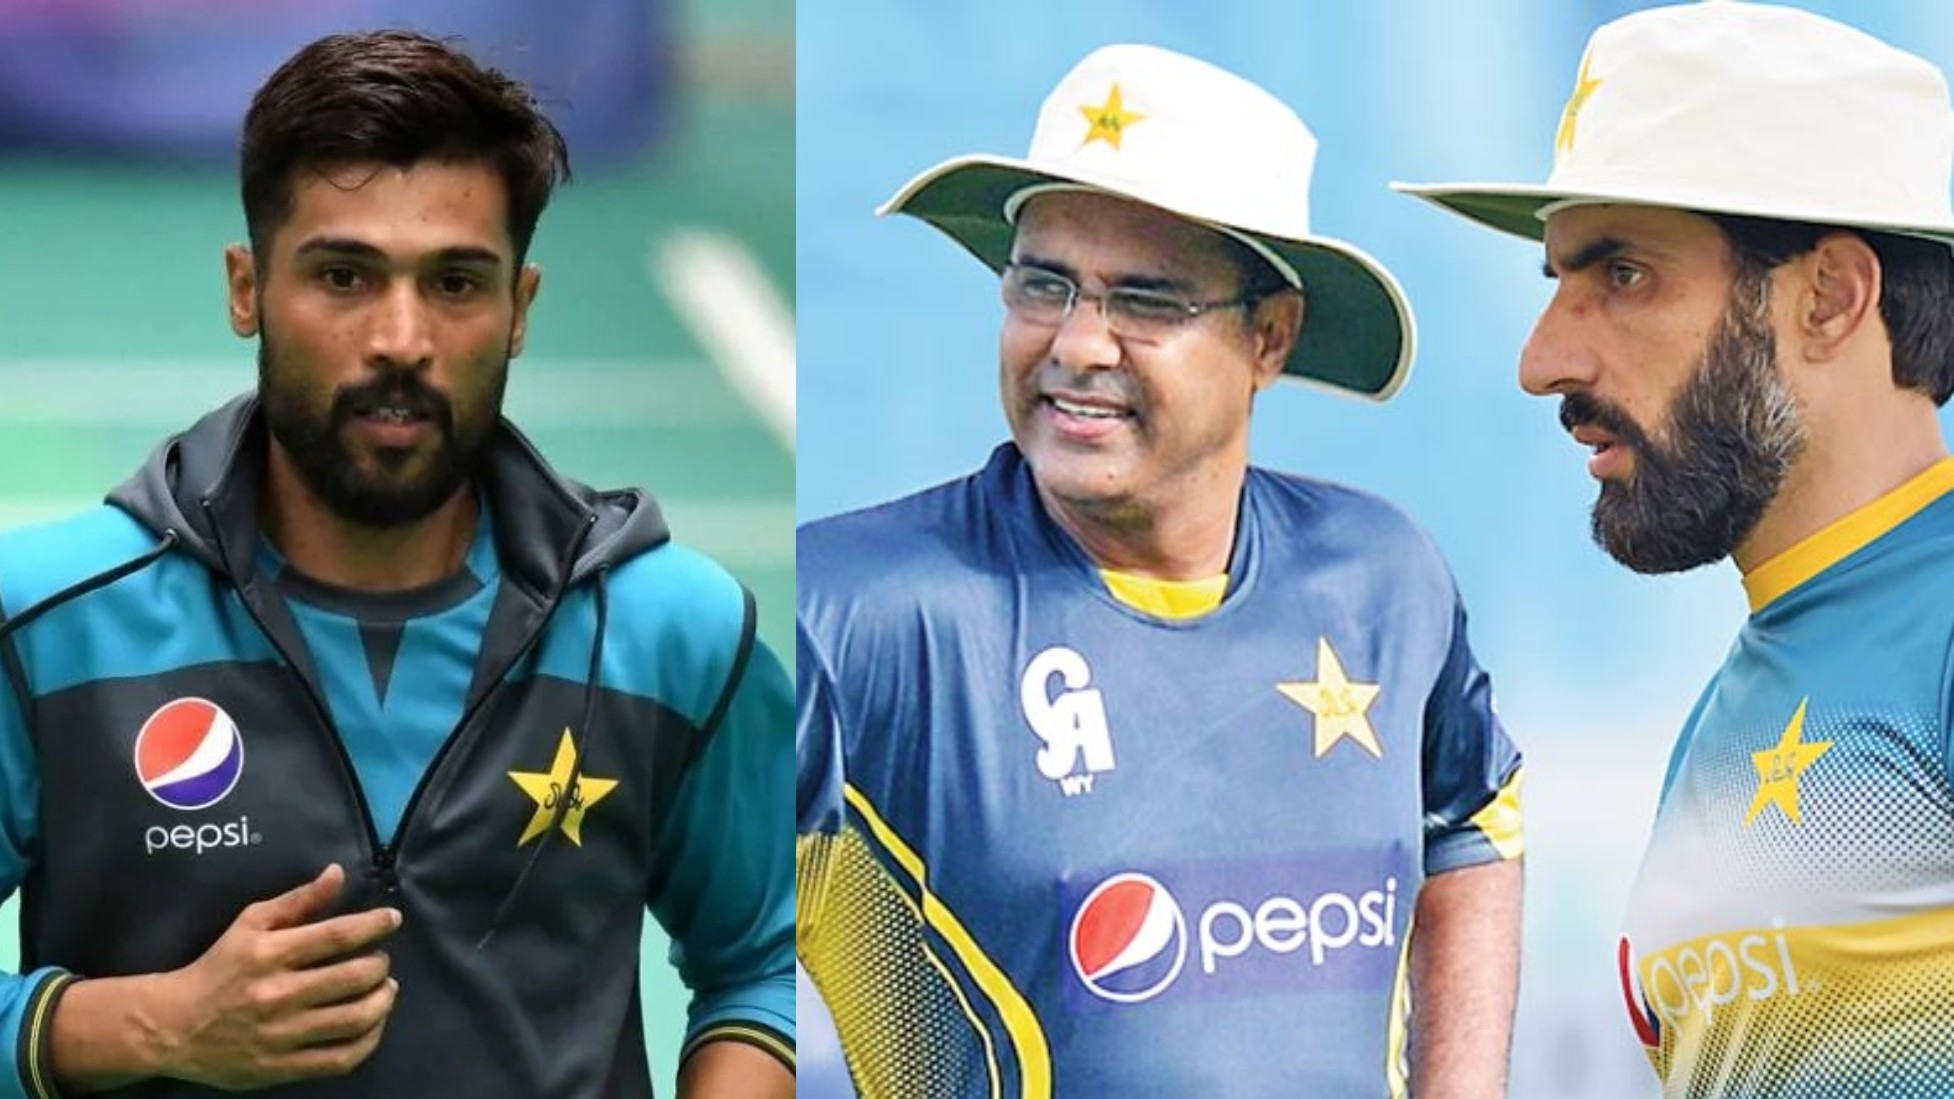 WATCH- Mohammad Amir accuses Misbah Ul Haq and Waqar Younis of spoiling his image with Pakistani fans